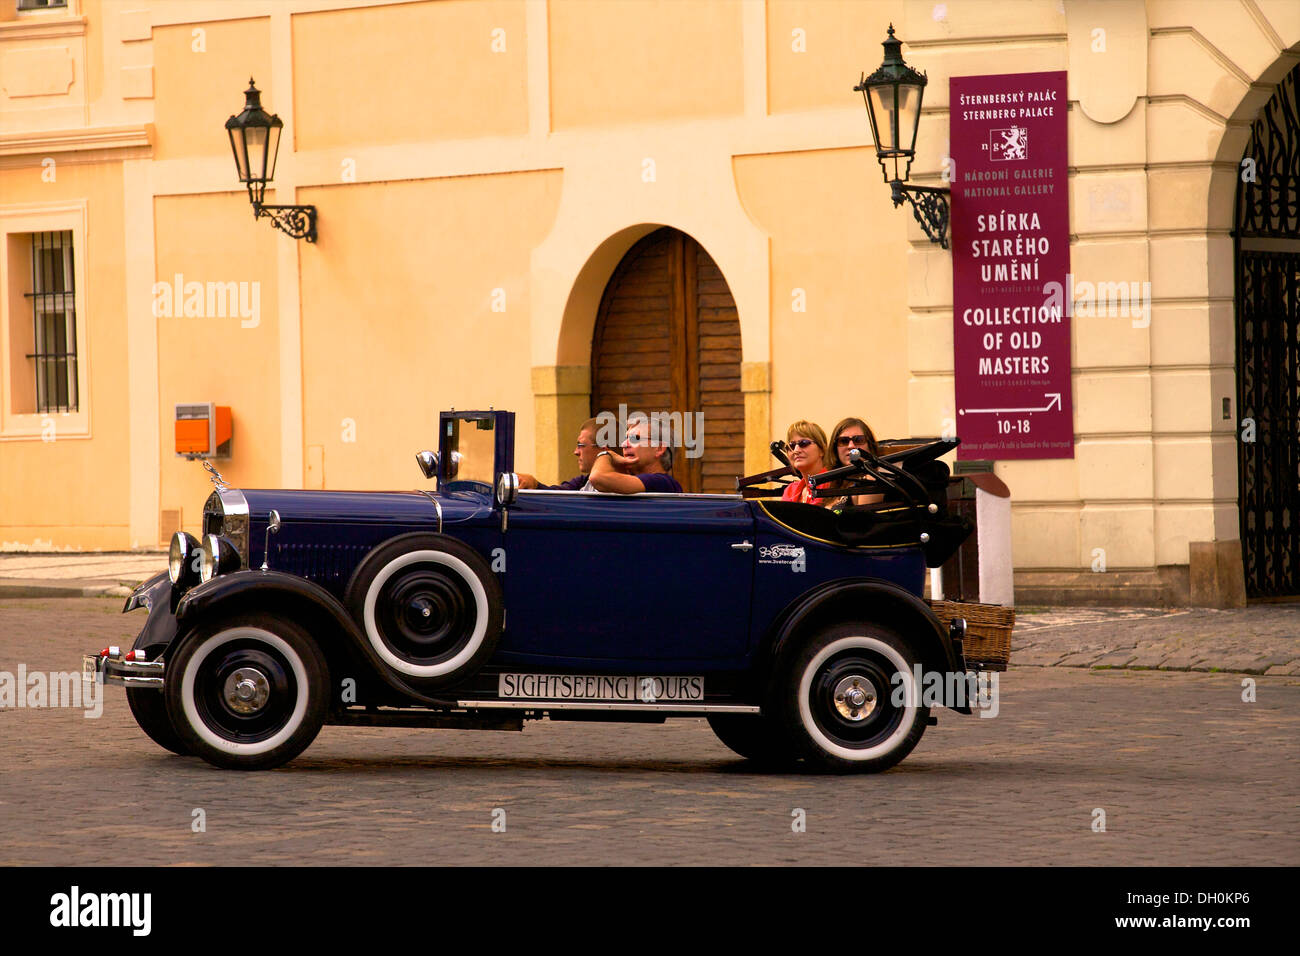 vintage car tour guide stock photos vintage car tour guide stock rh alamy com vintage car labor guide vintage car buyers guide